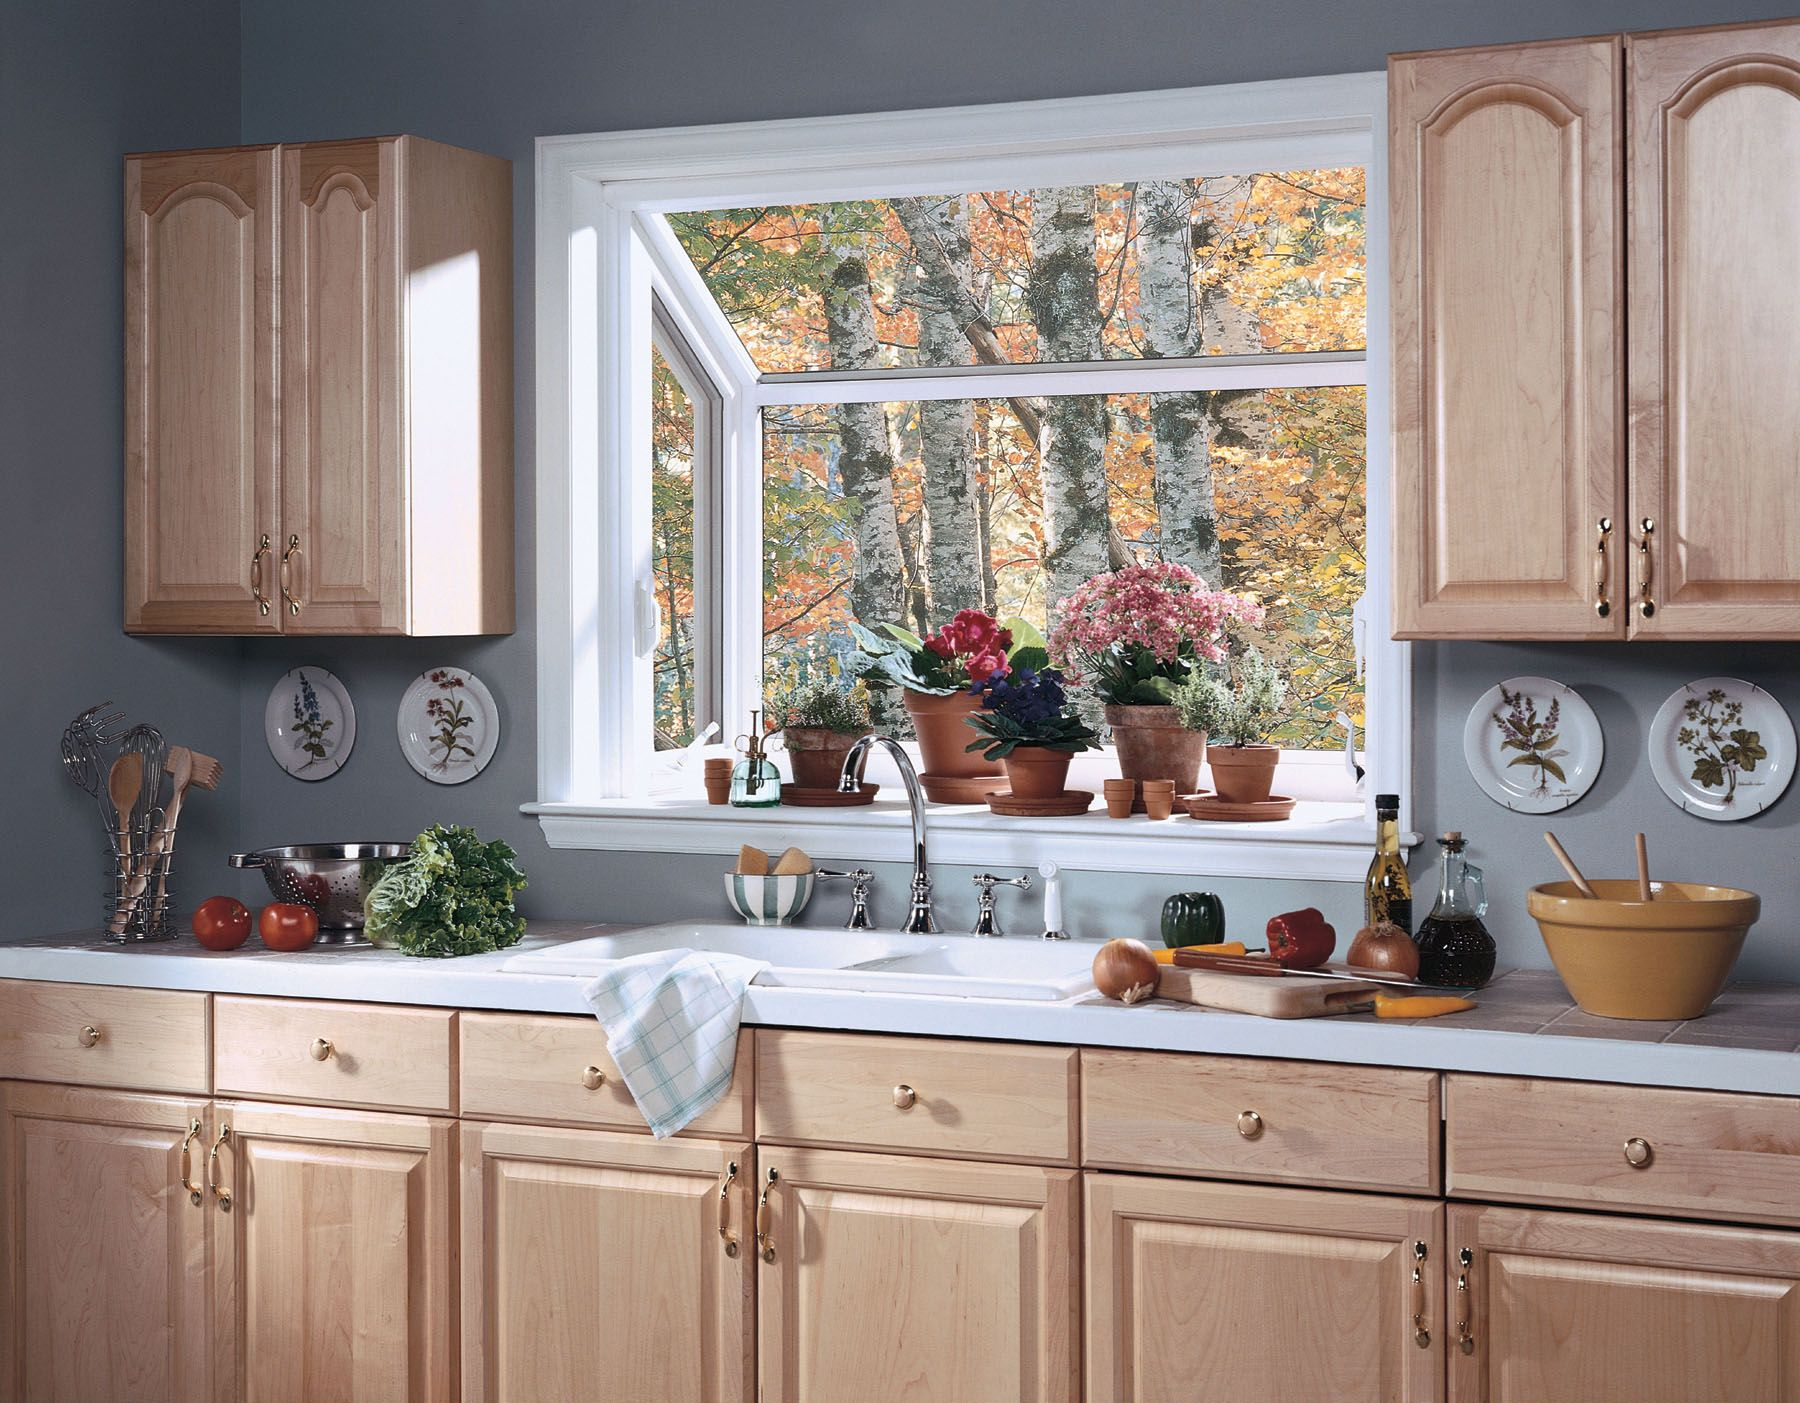 Mural Of Garden Windows For Kitchen Refreshing Part In The